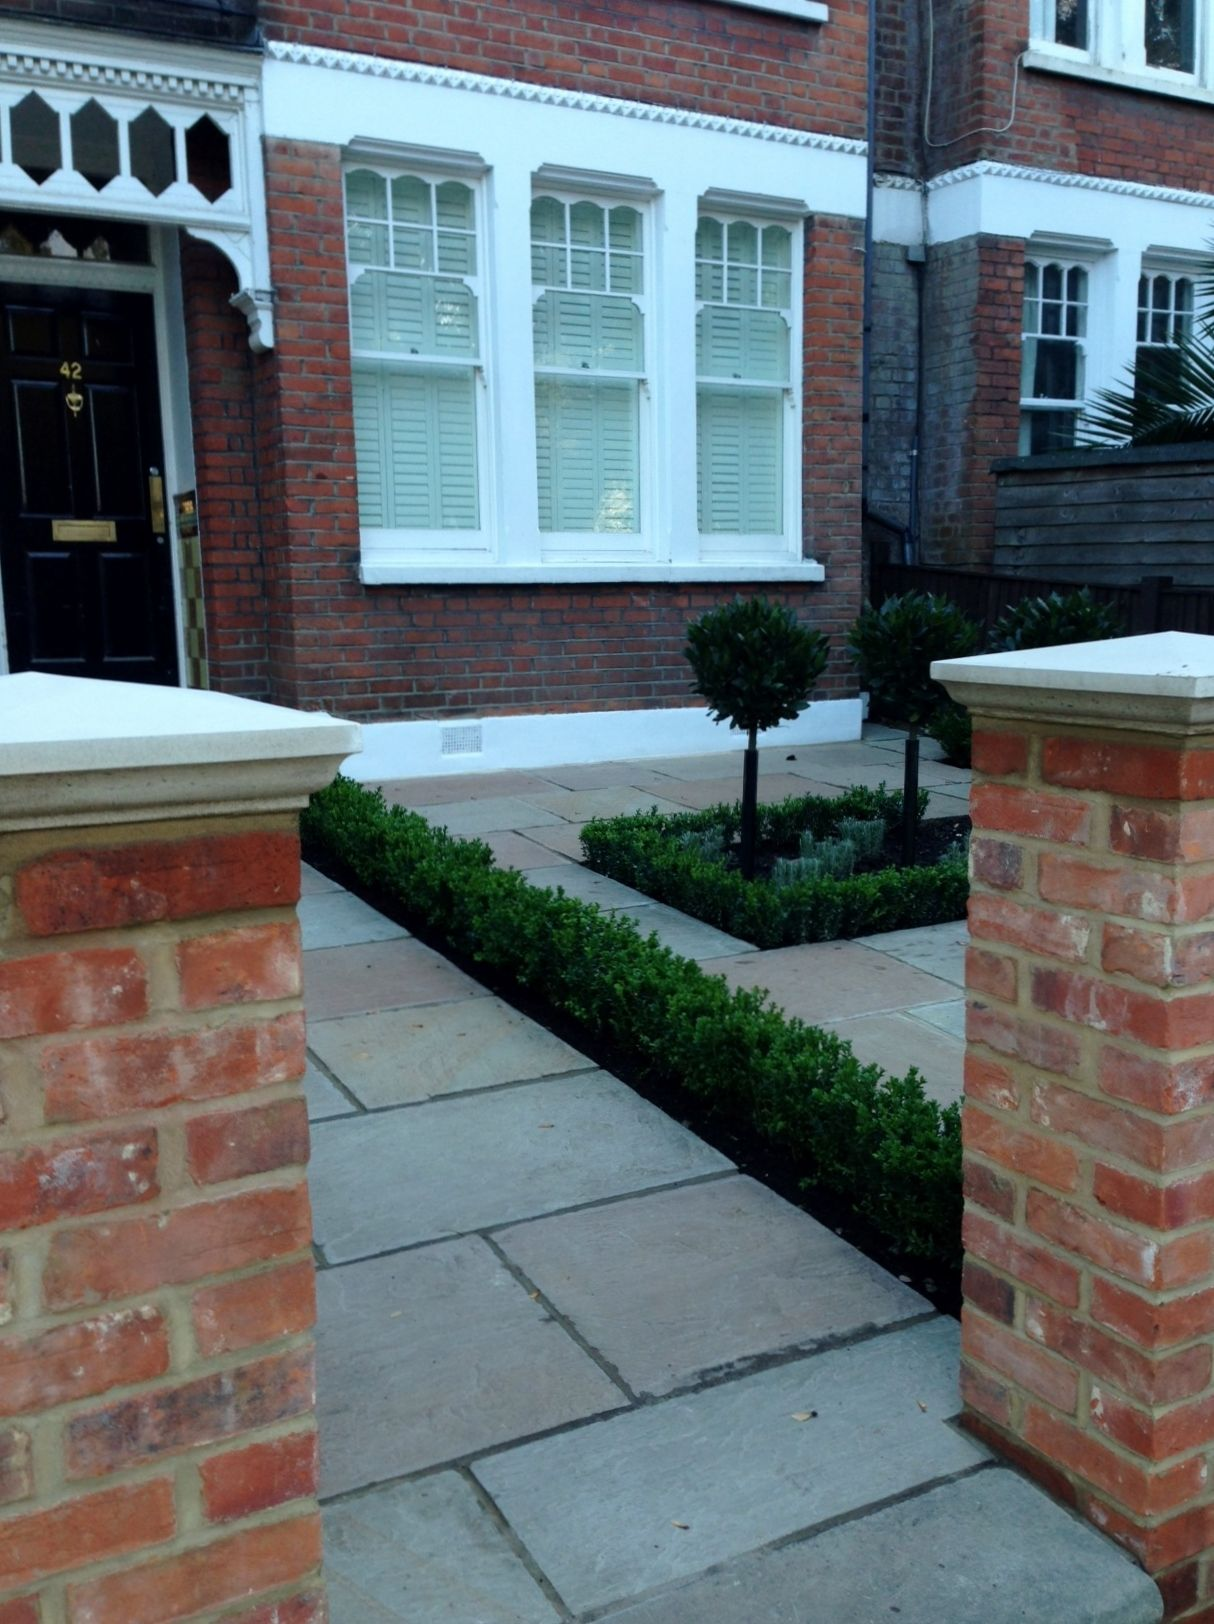 Imperial Red Brick London Wall Stone Pier Caps Sandstone Paving And Formal Topiary Classic Front Garden B House Front Porch Brick Patios Victorian Front Garden